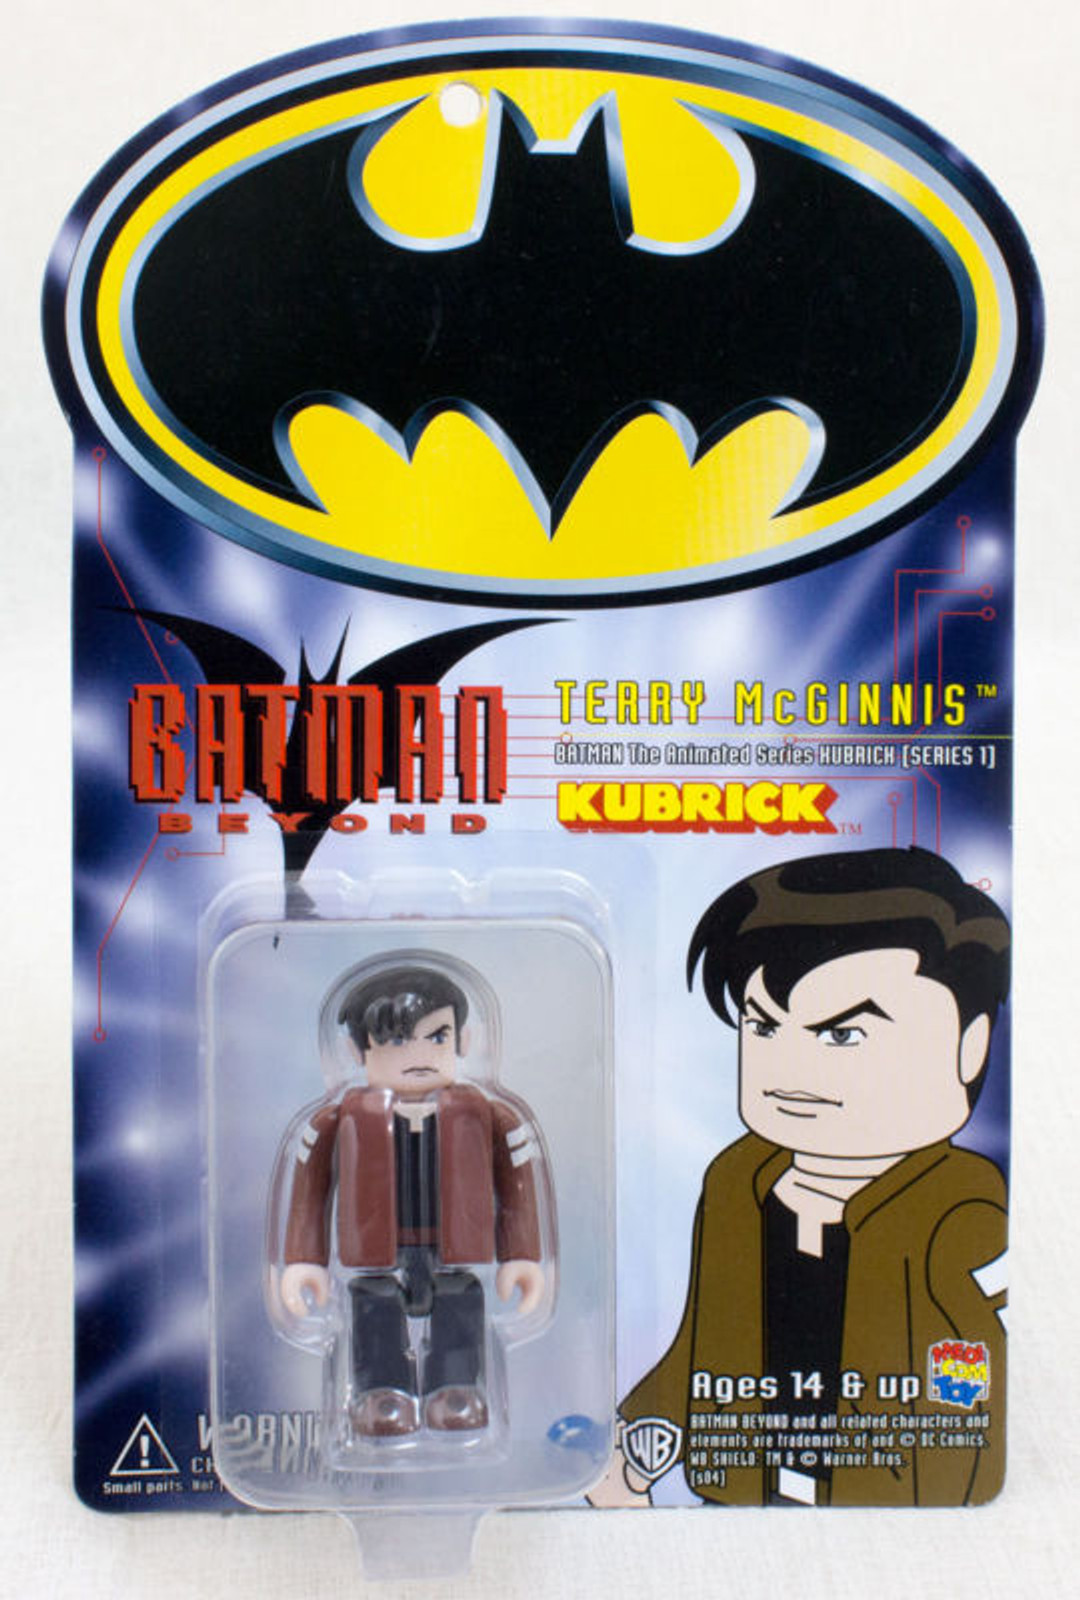 Batman Beyond Animated Hubrich Terry McGinnis Kubrick Medicom Toy Figure JAPAN